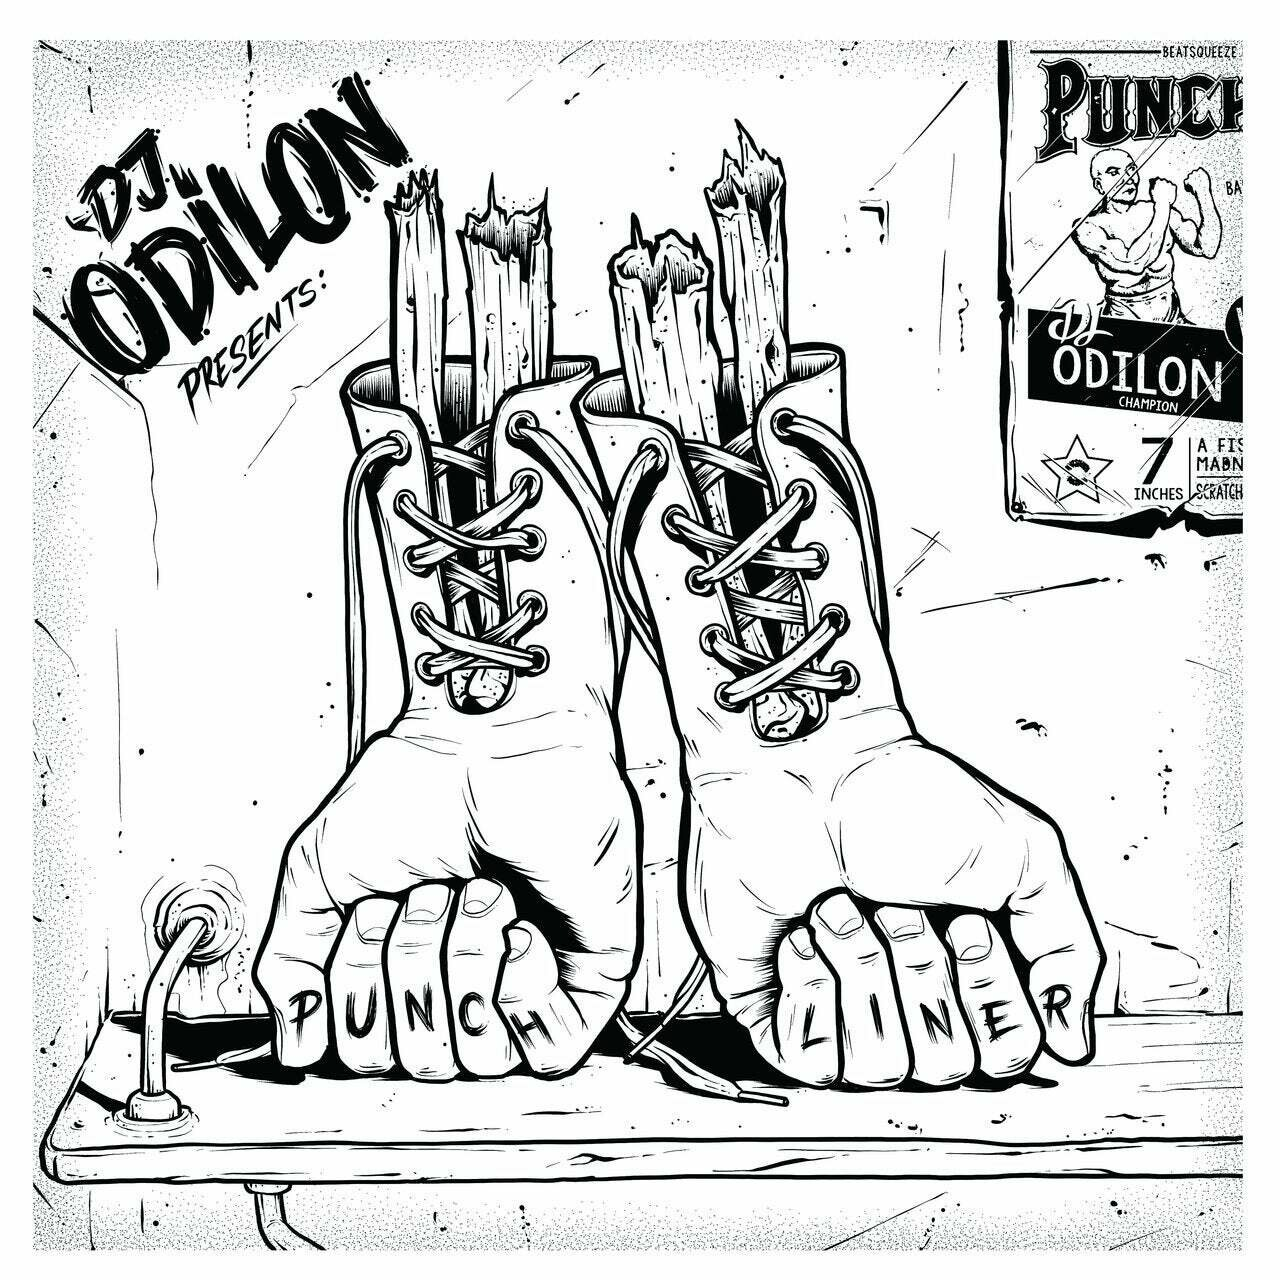 THE PUNCHLINER VOL.2 BY DJ ODILON (7 дюймов)